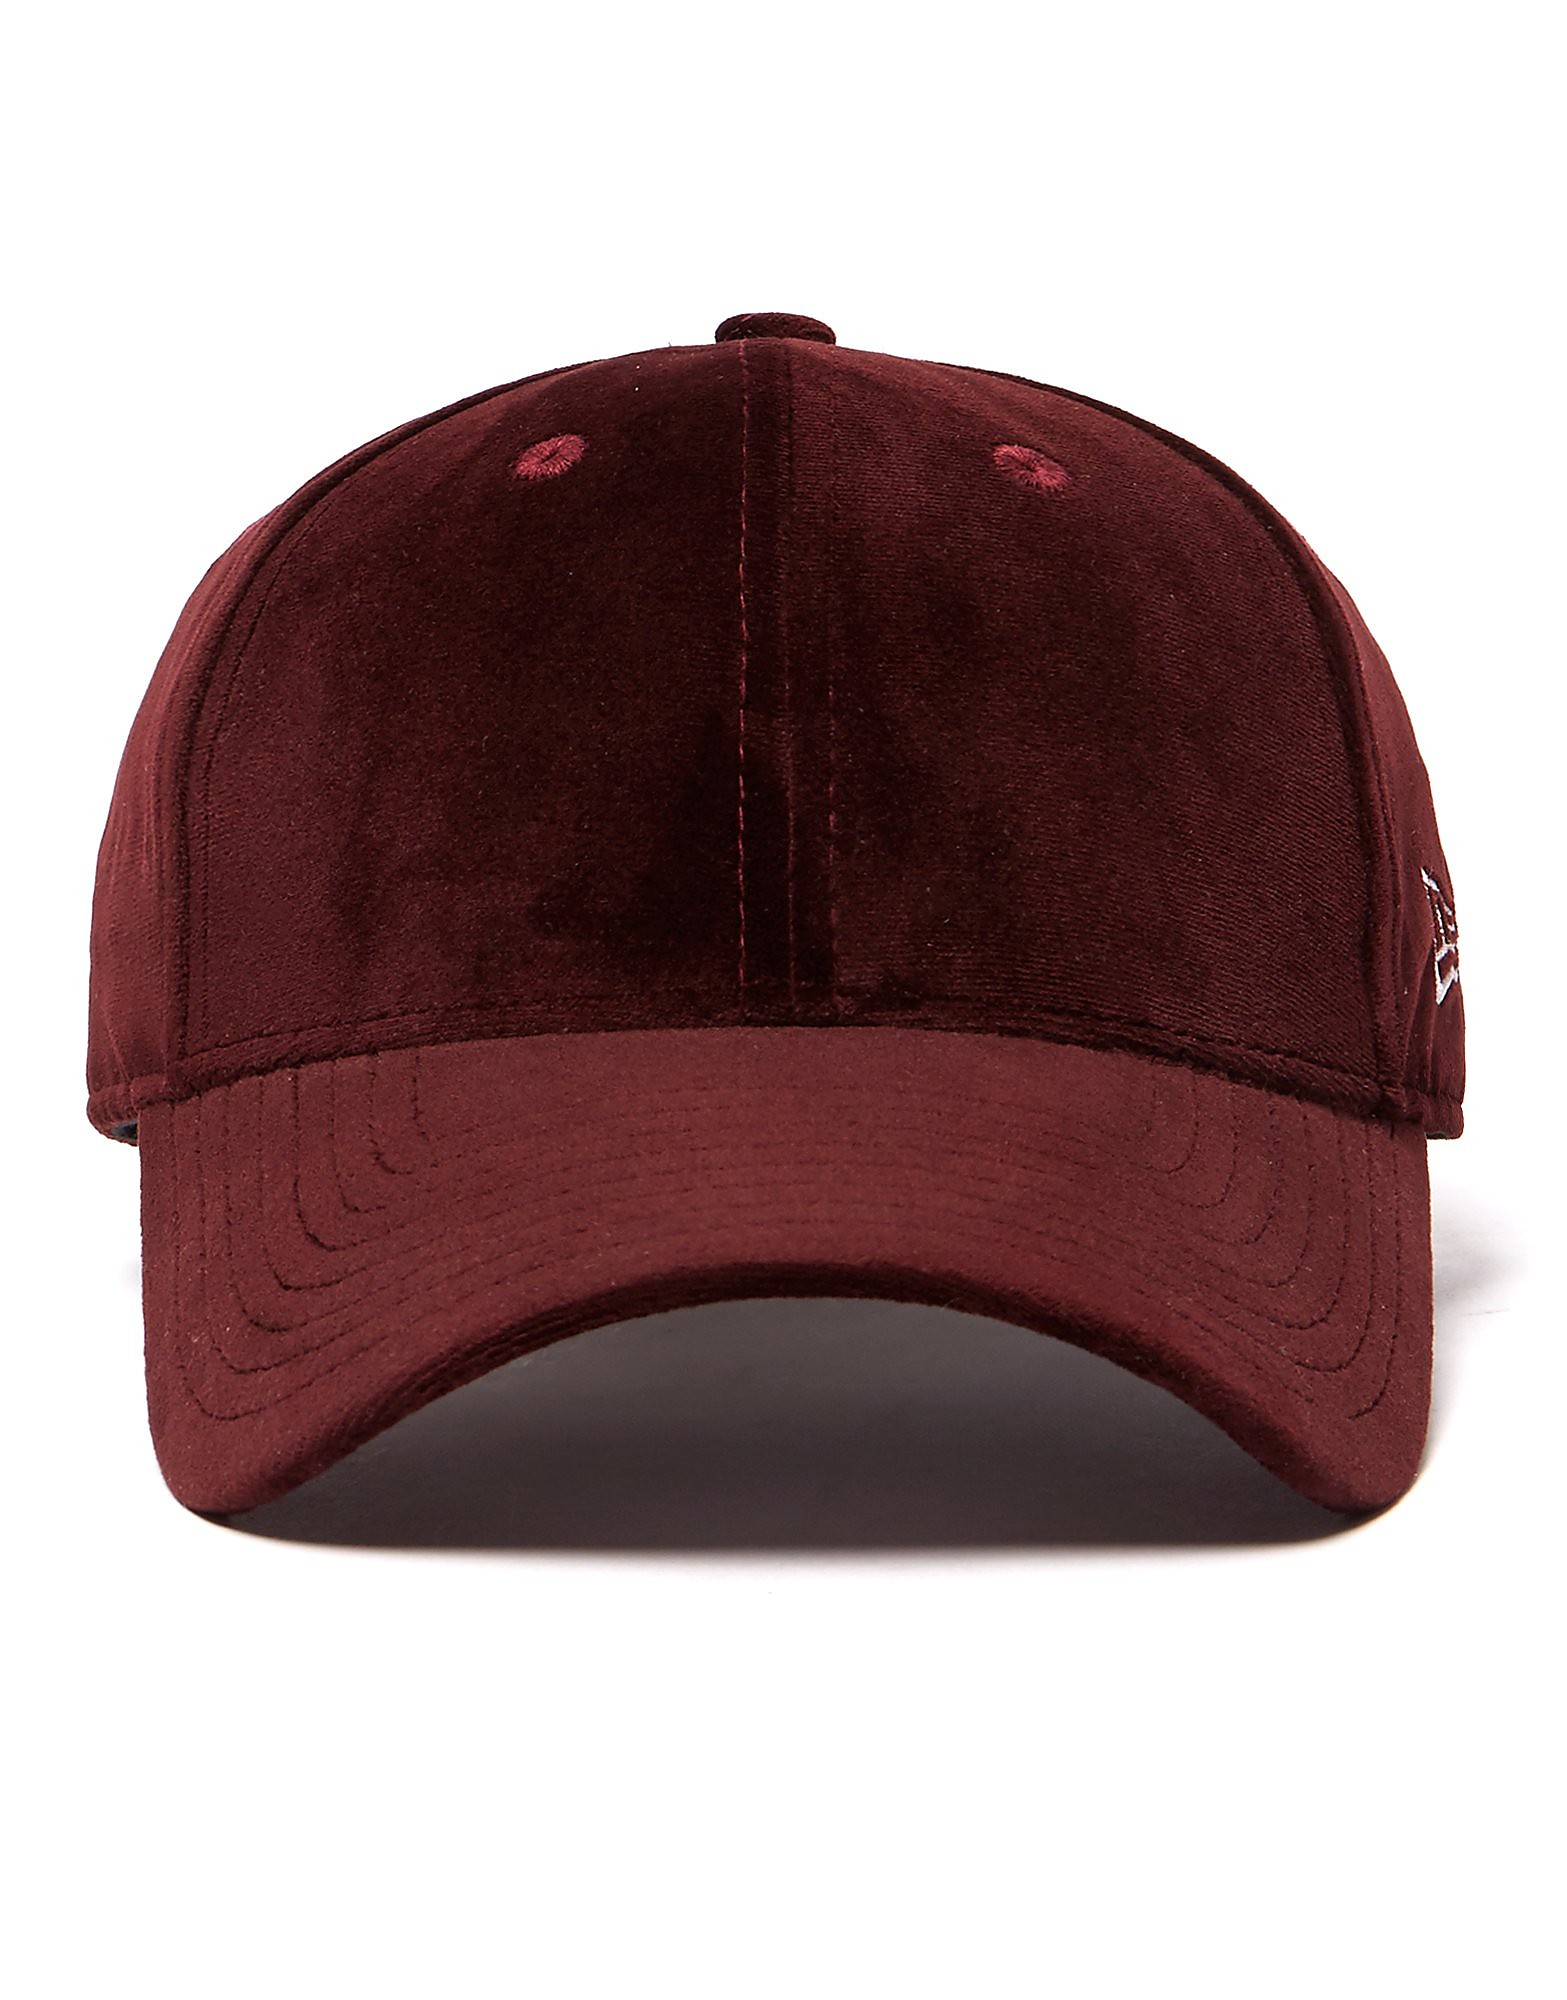 New Era 9FORTY Velour Cap